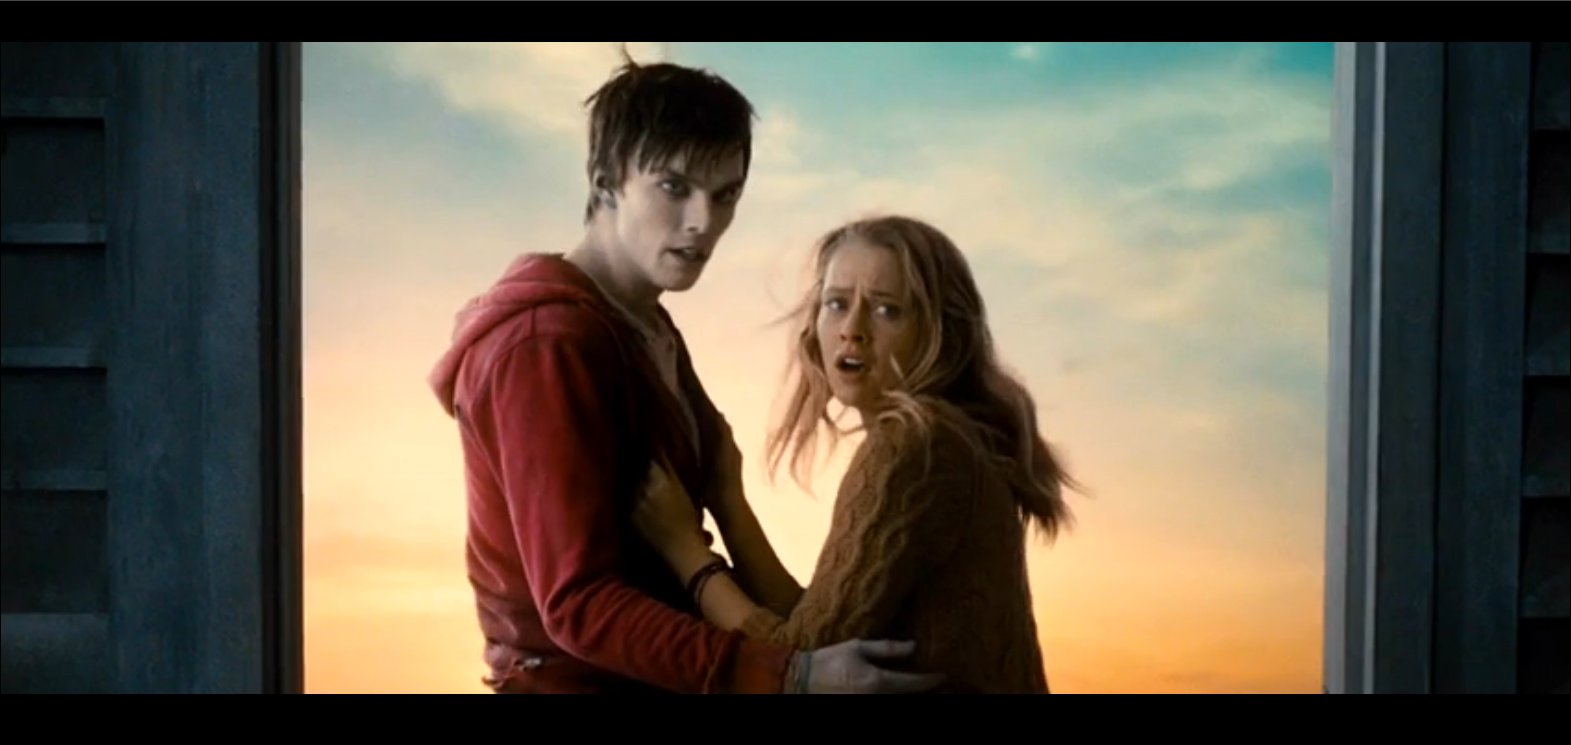 R and Julie in Warm Bodies (2013)